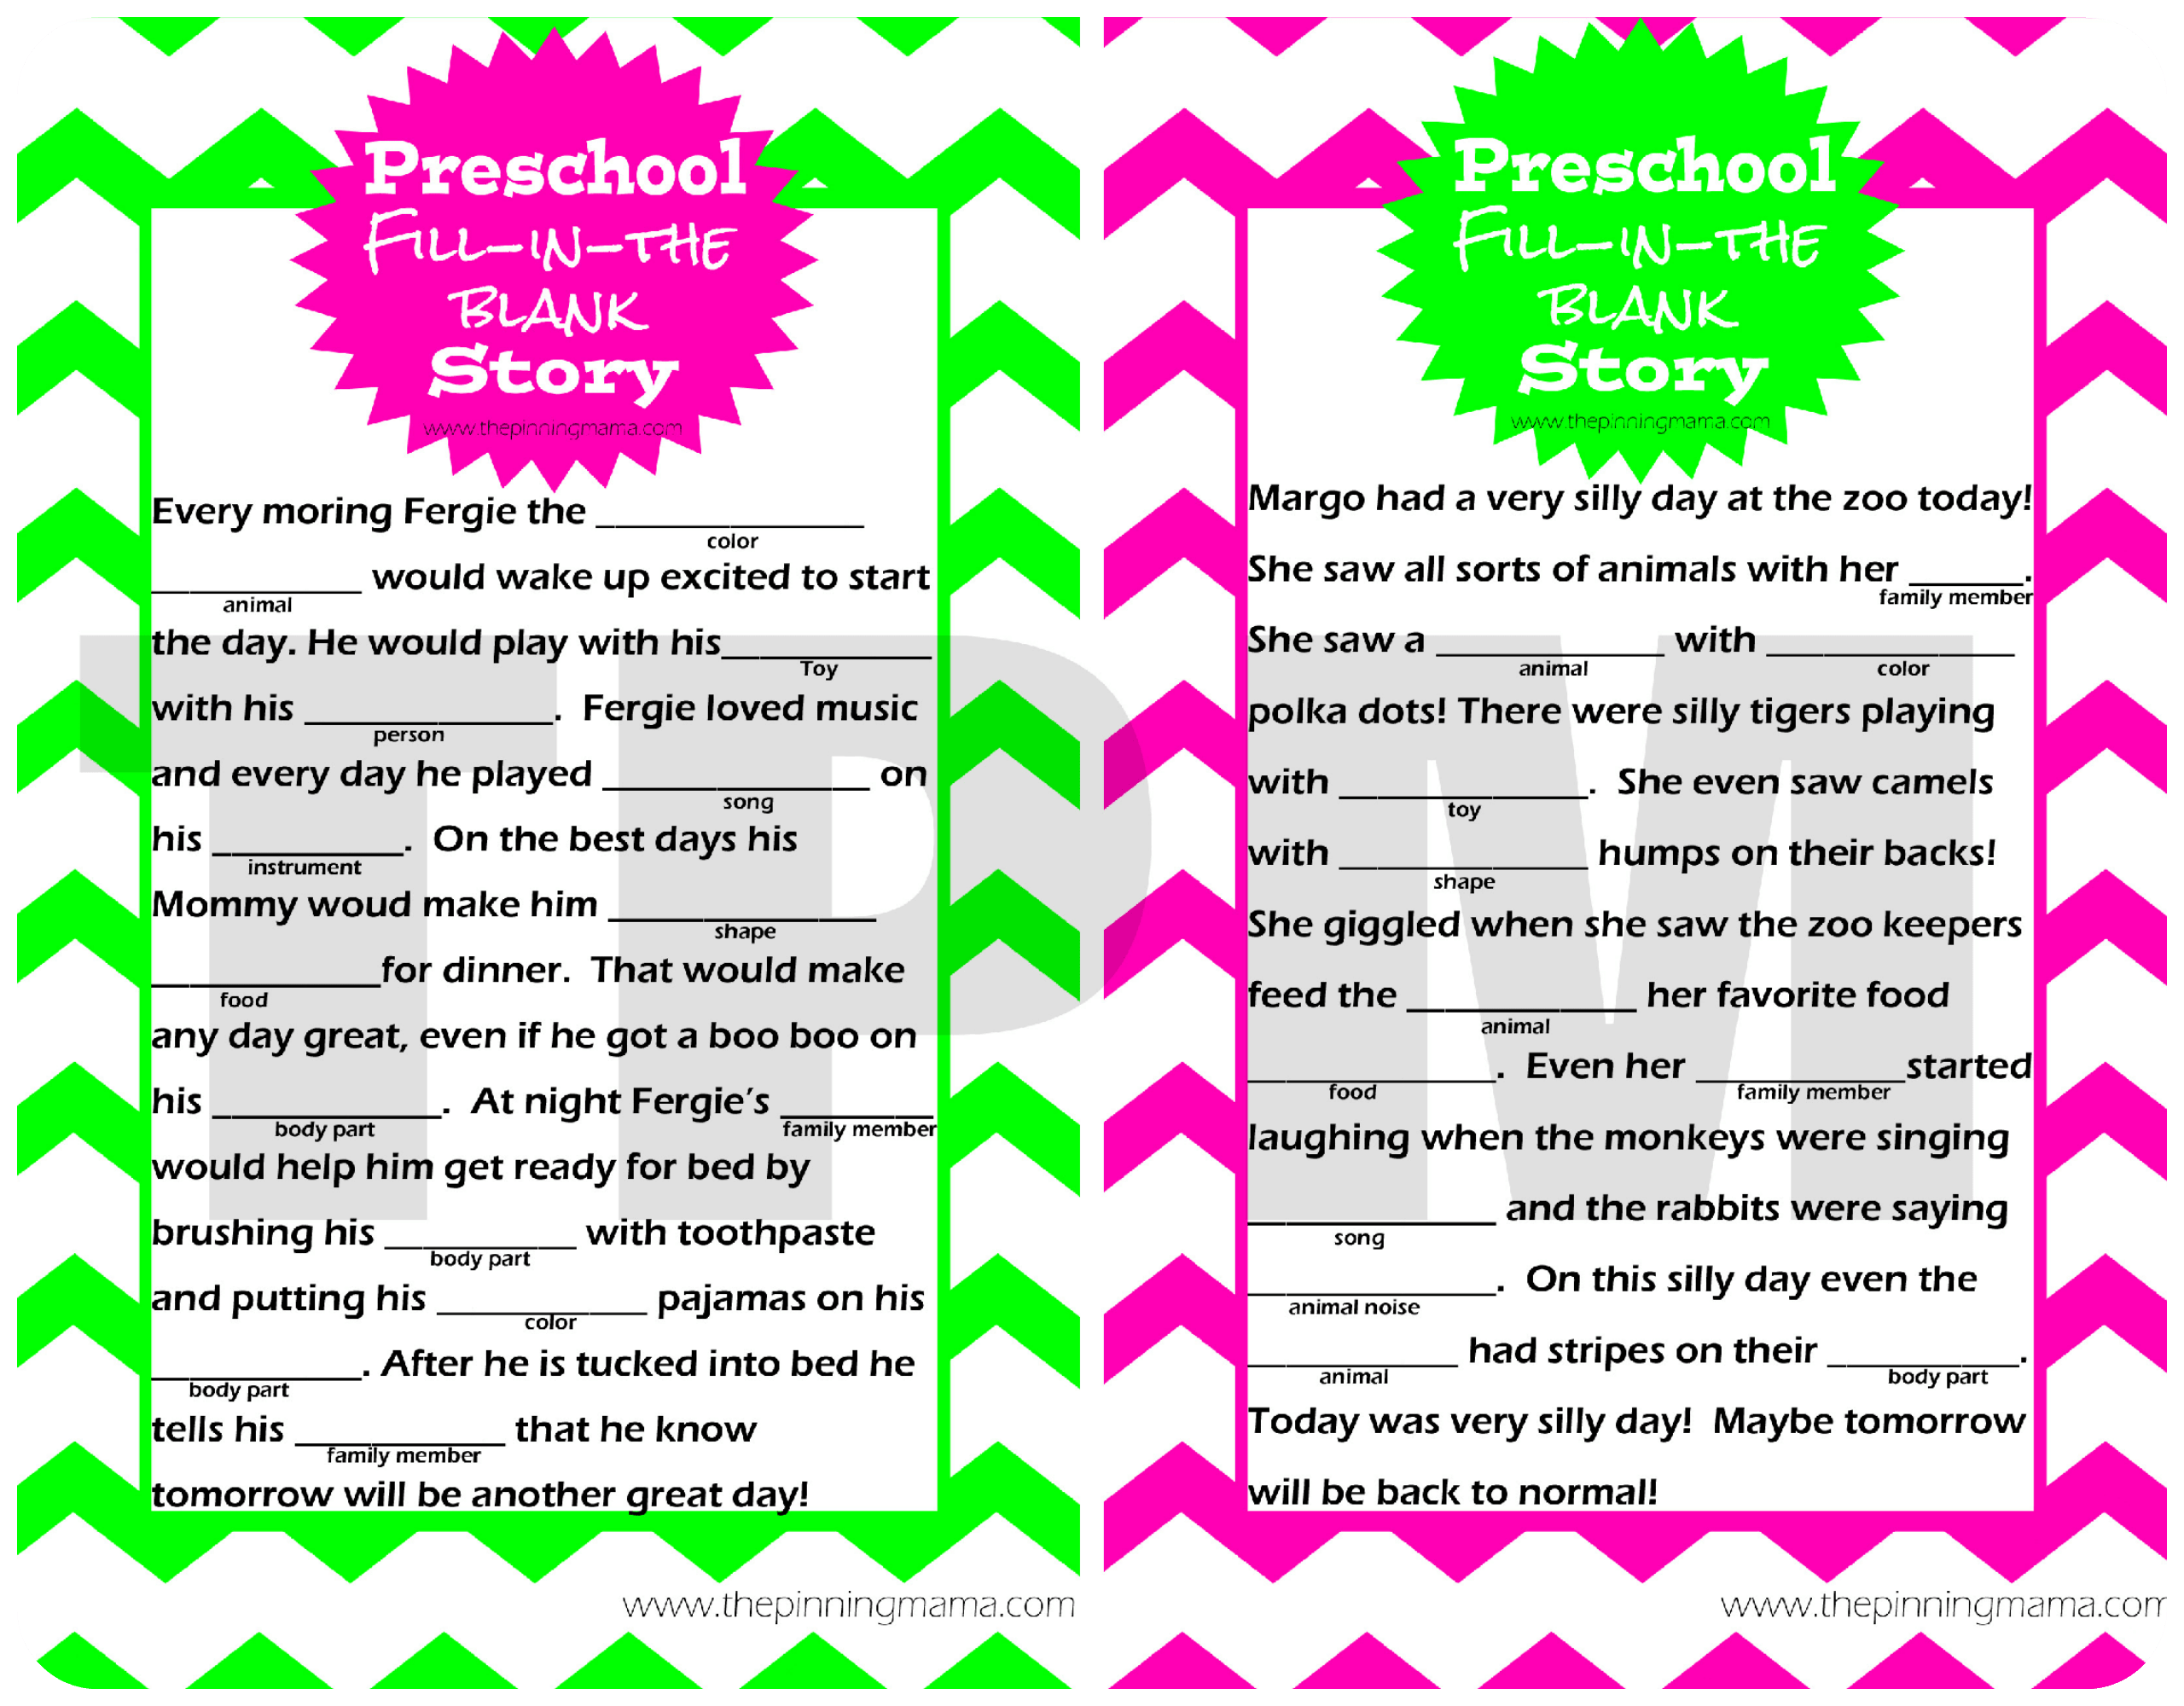 Fun Activities For Preschoolers Mad Libs Style Story For Preschoolers The Pinning Mama